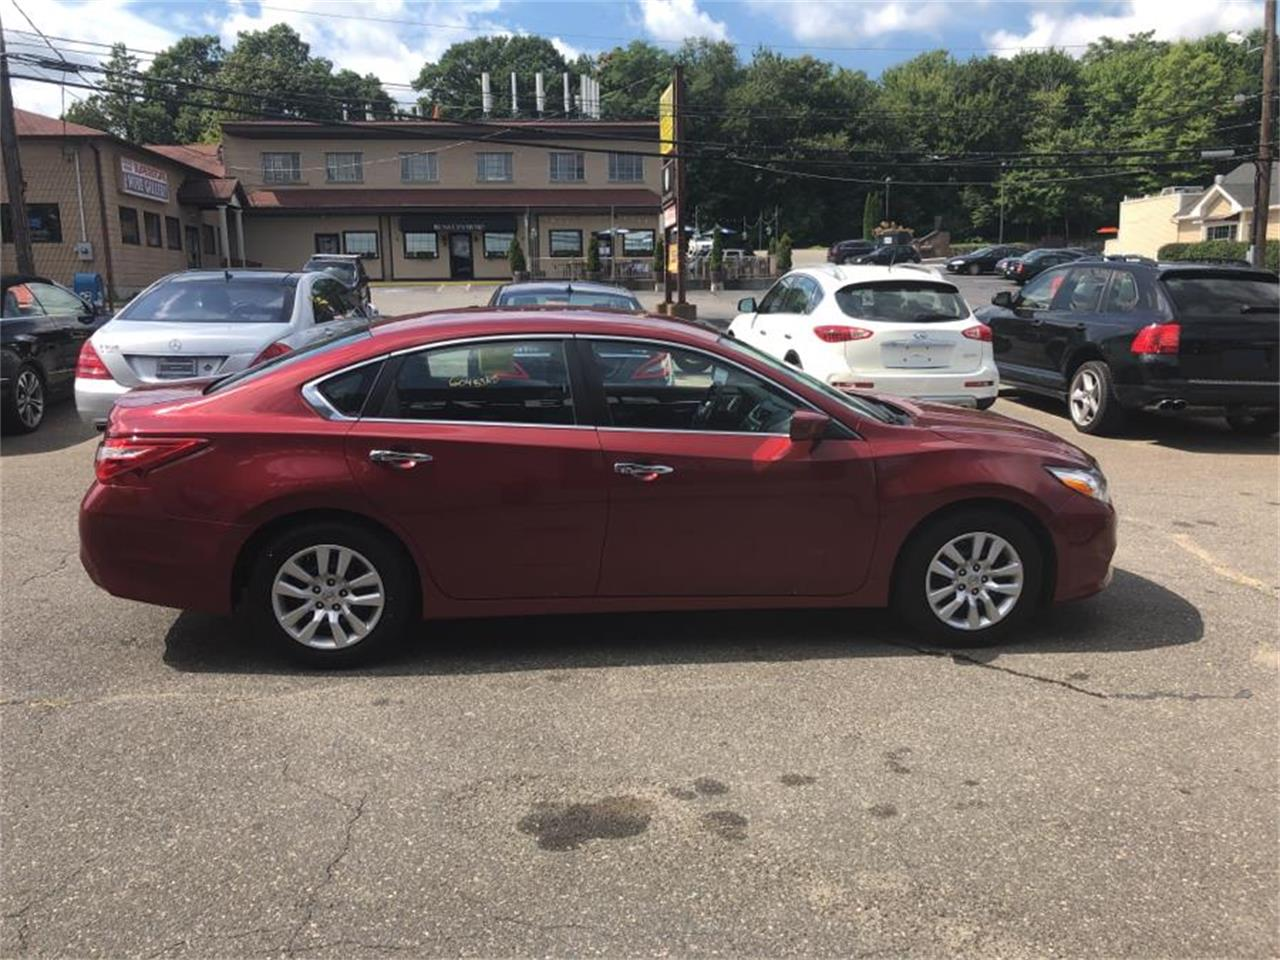 2016 Nissan Altima (CC-1294474) for sale in Waterbury, Connecticut